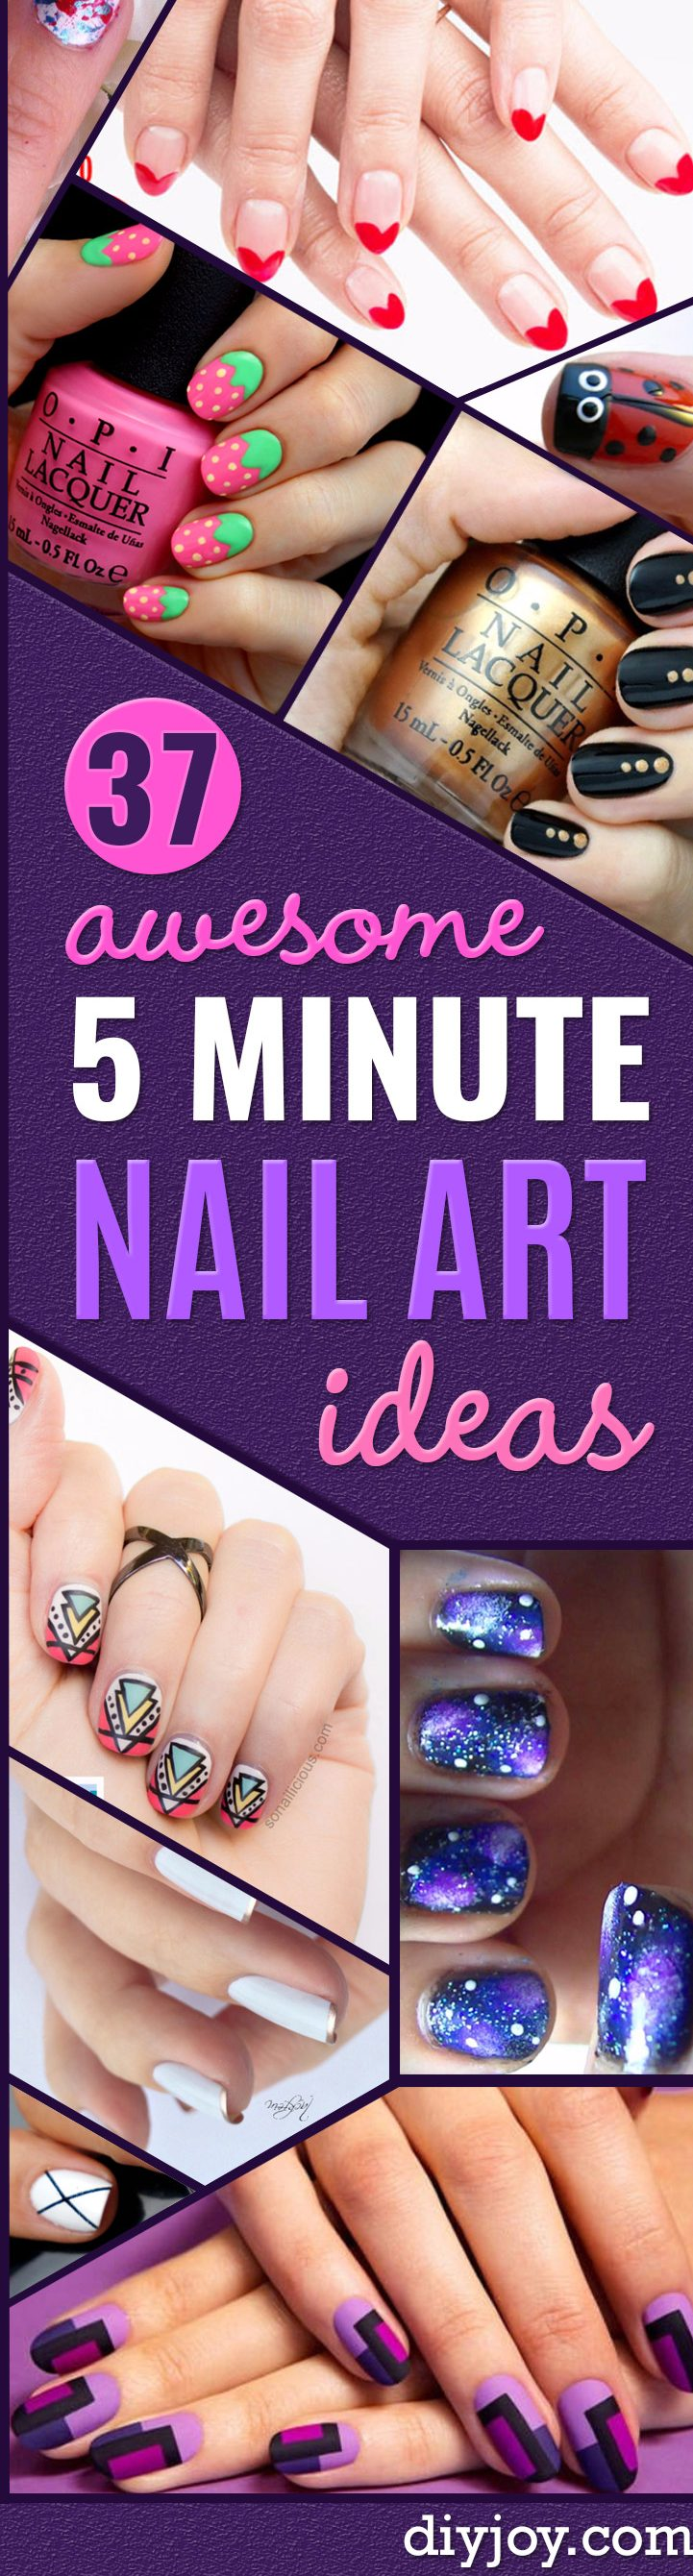 Quick Nail Art Ideas - Easy Step by Step Nail Designs With Tutorials and Instructions - Simple Photos Show You How To Get A Perfect Manicure at Home - Cool Beauty Tips and Tricks for Women and Teens